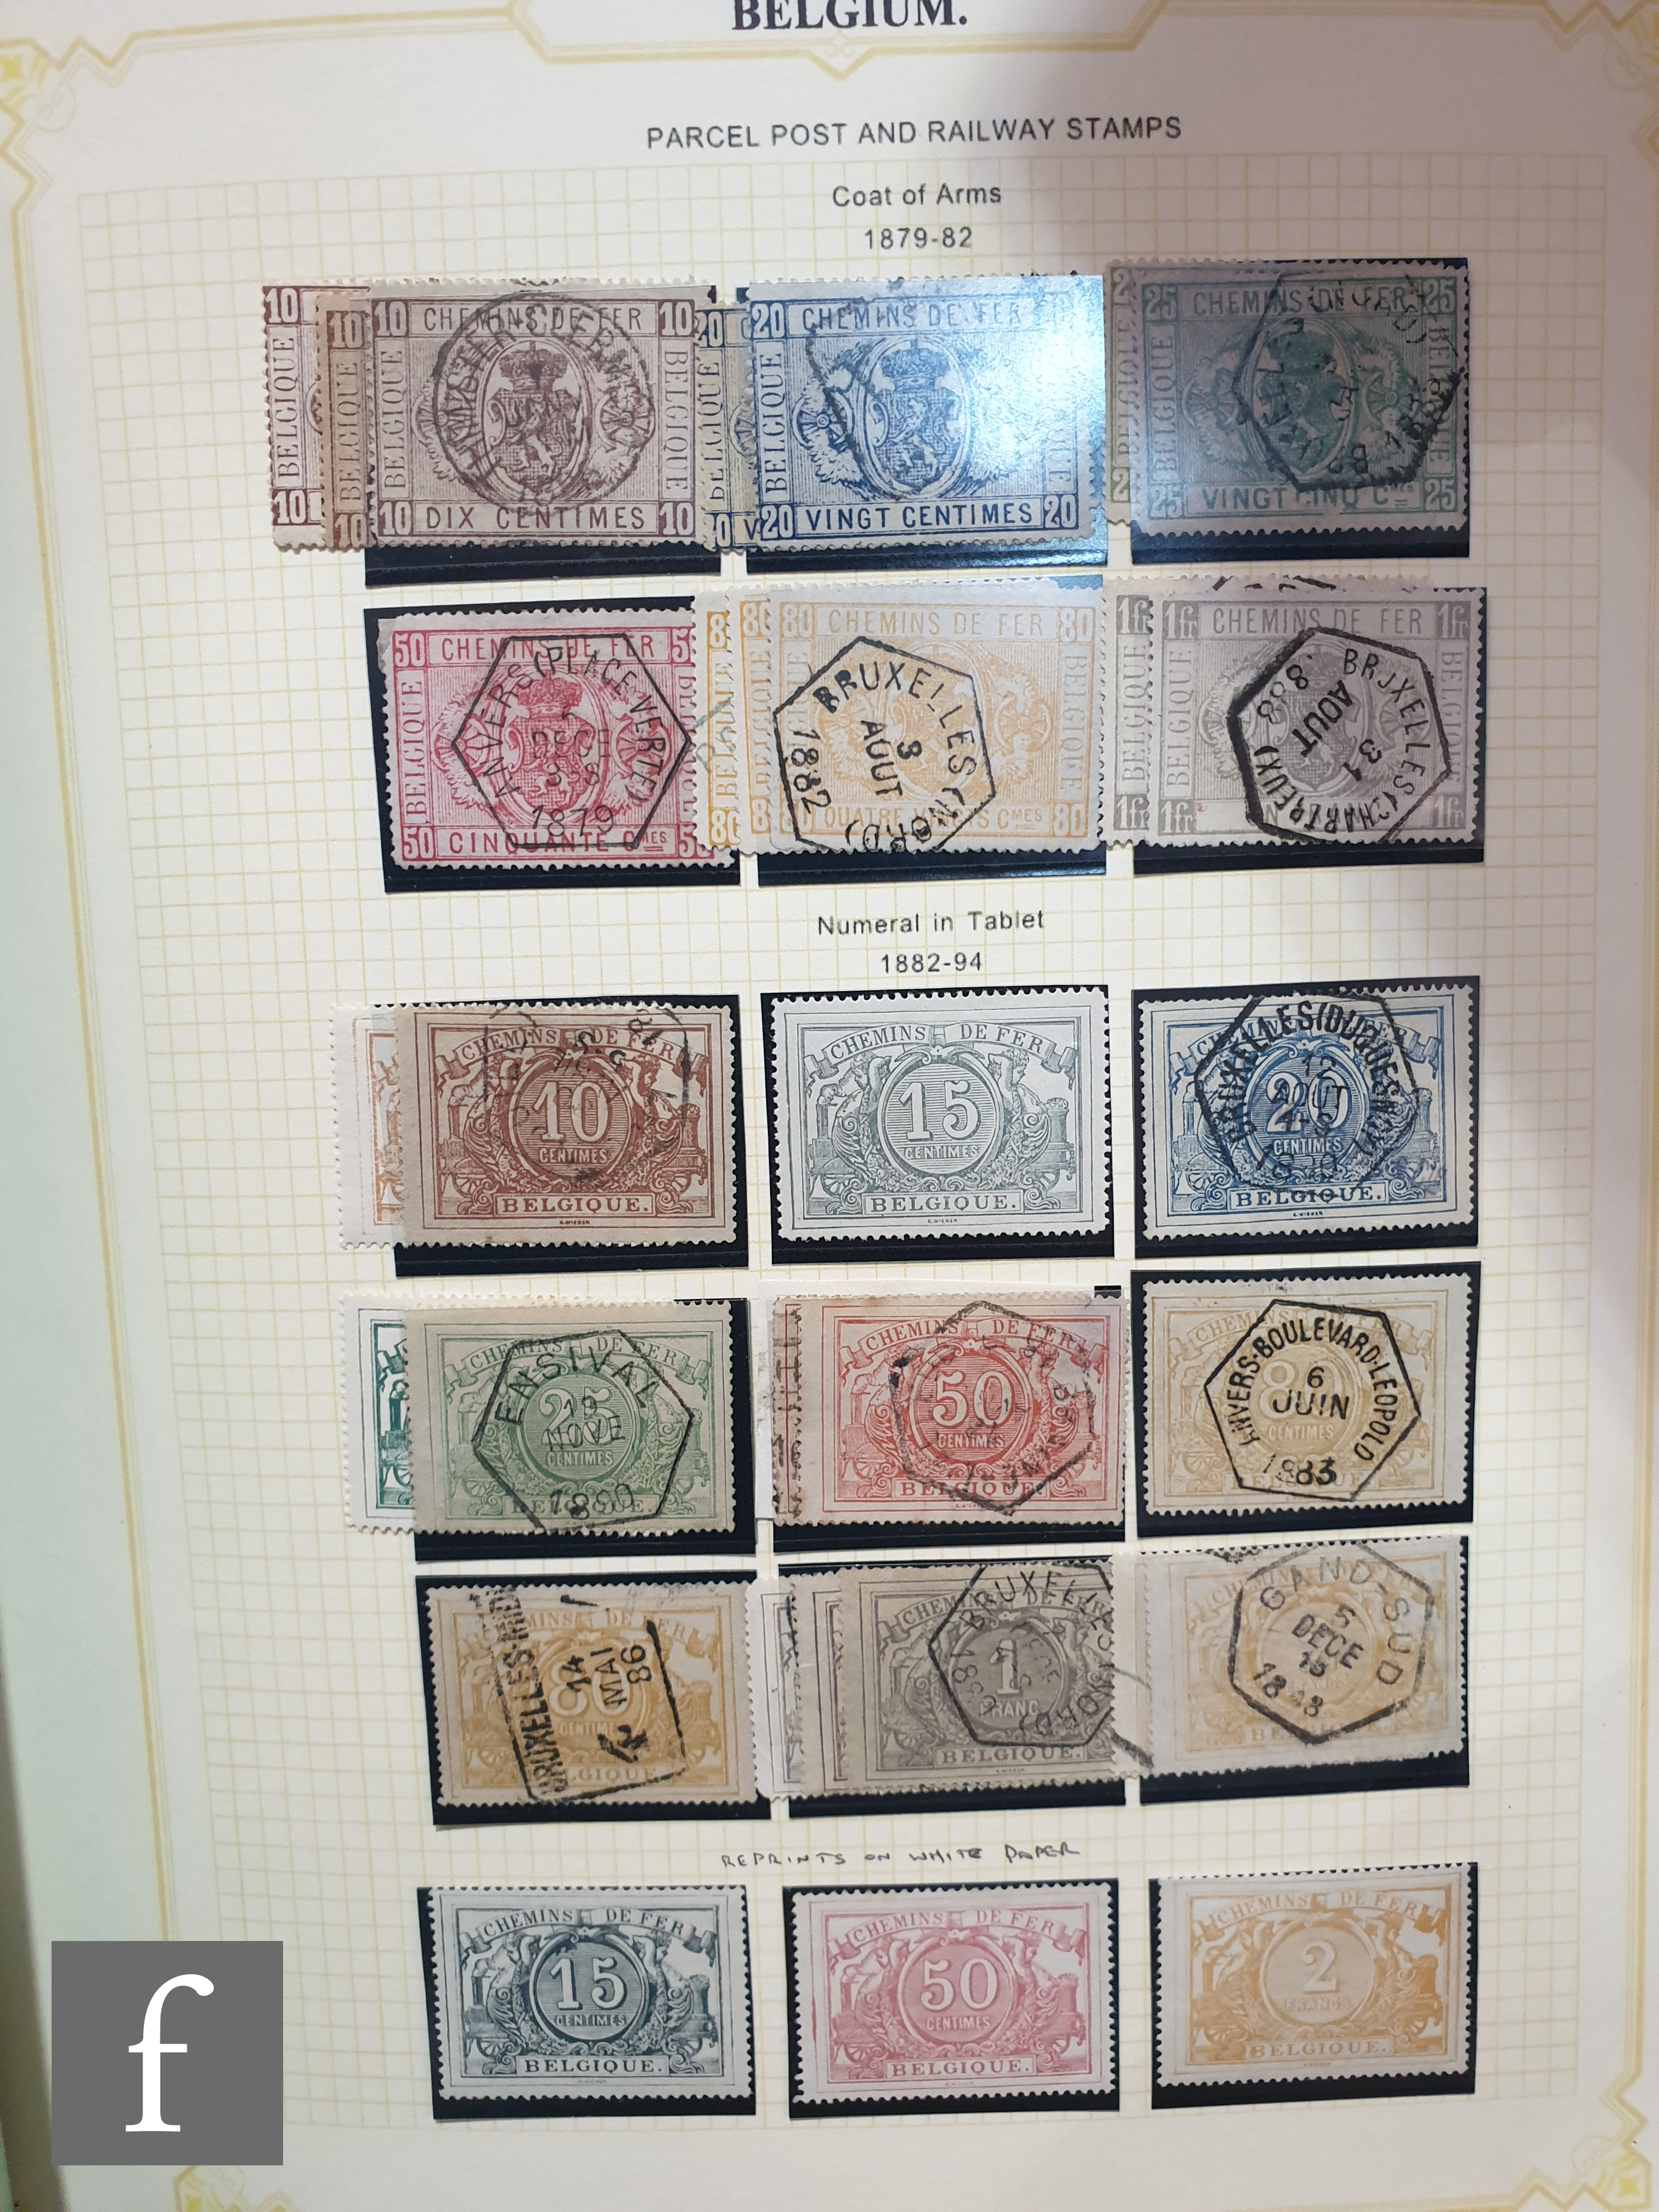 A collection of Belgian postage stamps, dating from 1850 through to the 1960s, all in two green